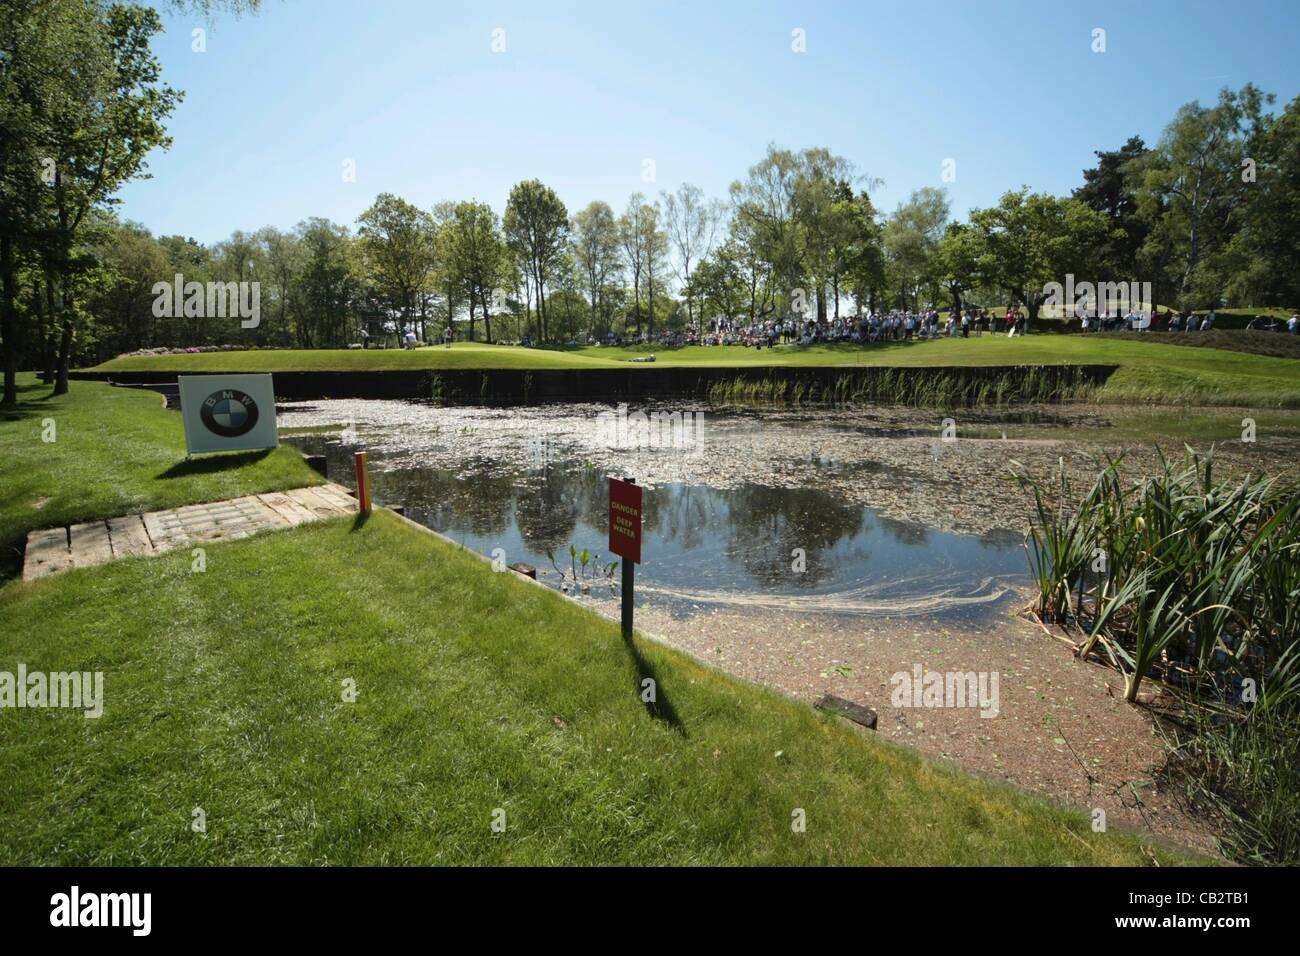 26.05.2012 Wentworth, England. The 8th at the BMW PGA Championship. Saturday, day 3 of competition. - Stock Image